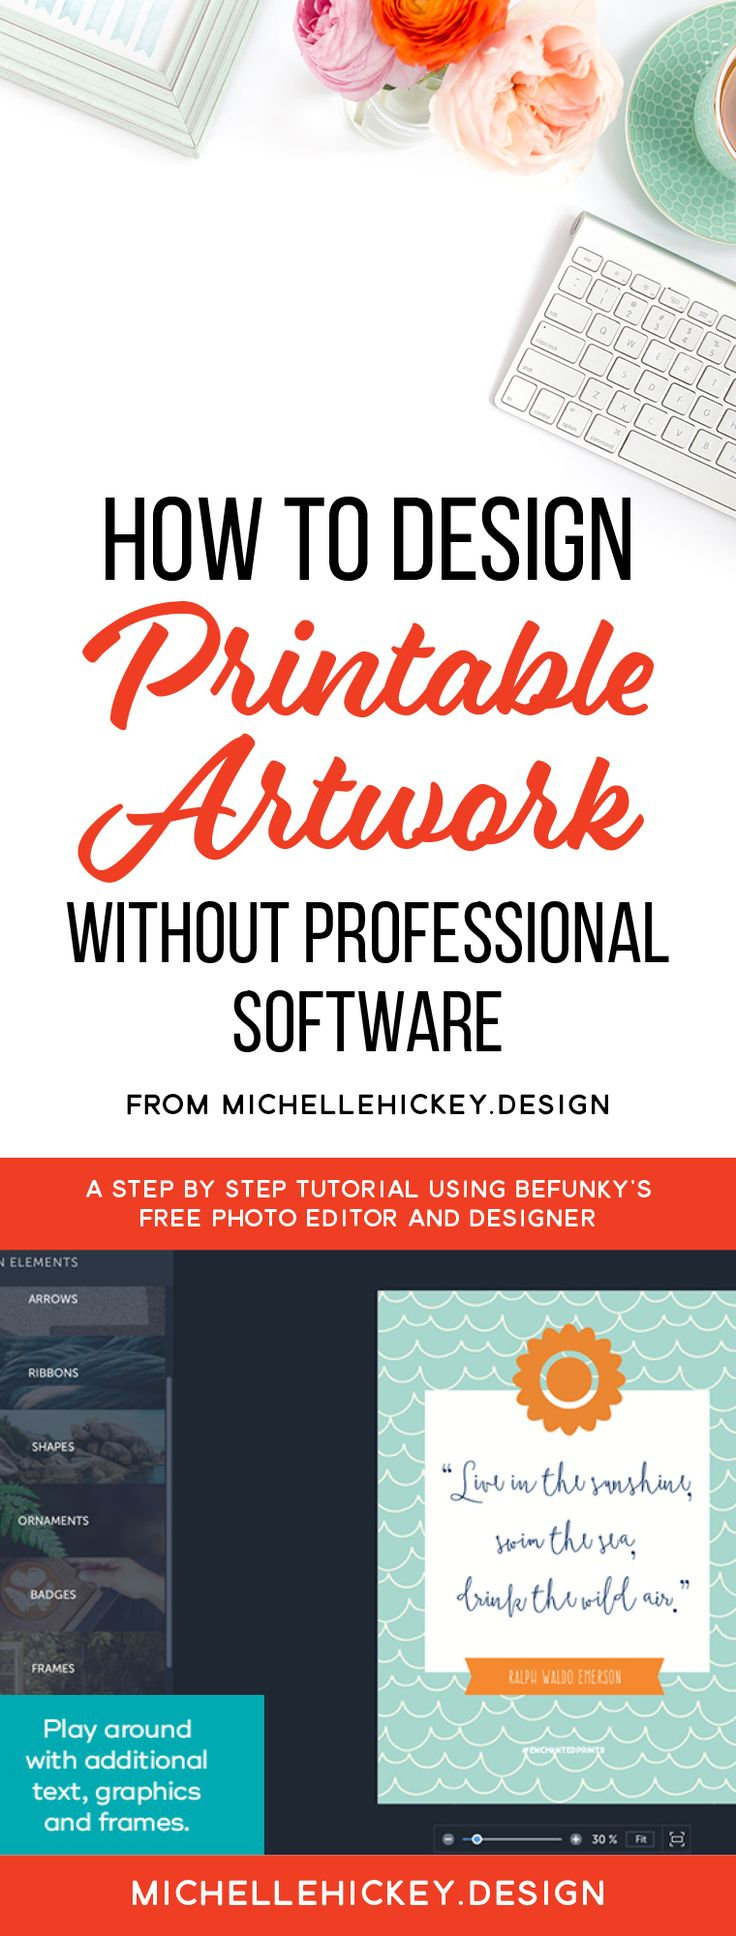 A step by step tutorial on how to design printable art, using BeFunky — a free online graphic design program. // From MichelleHickey.Design in partnership with BeFunky.